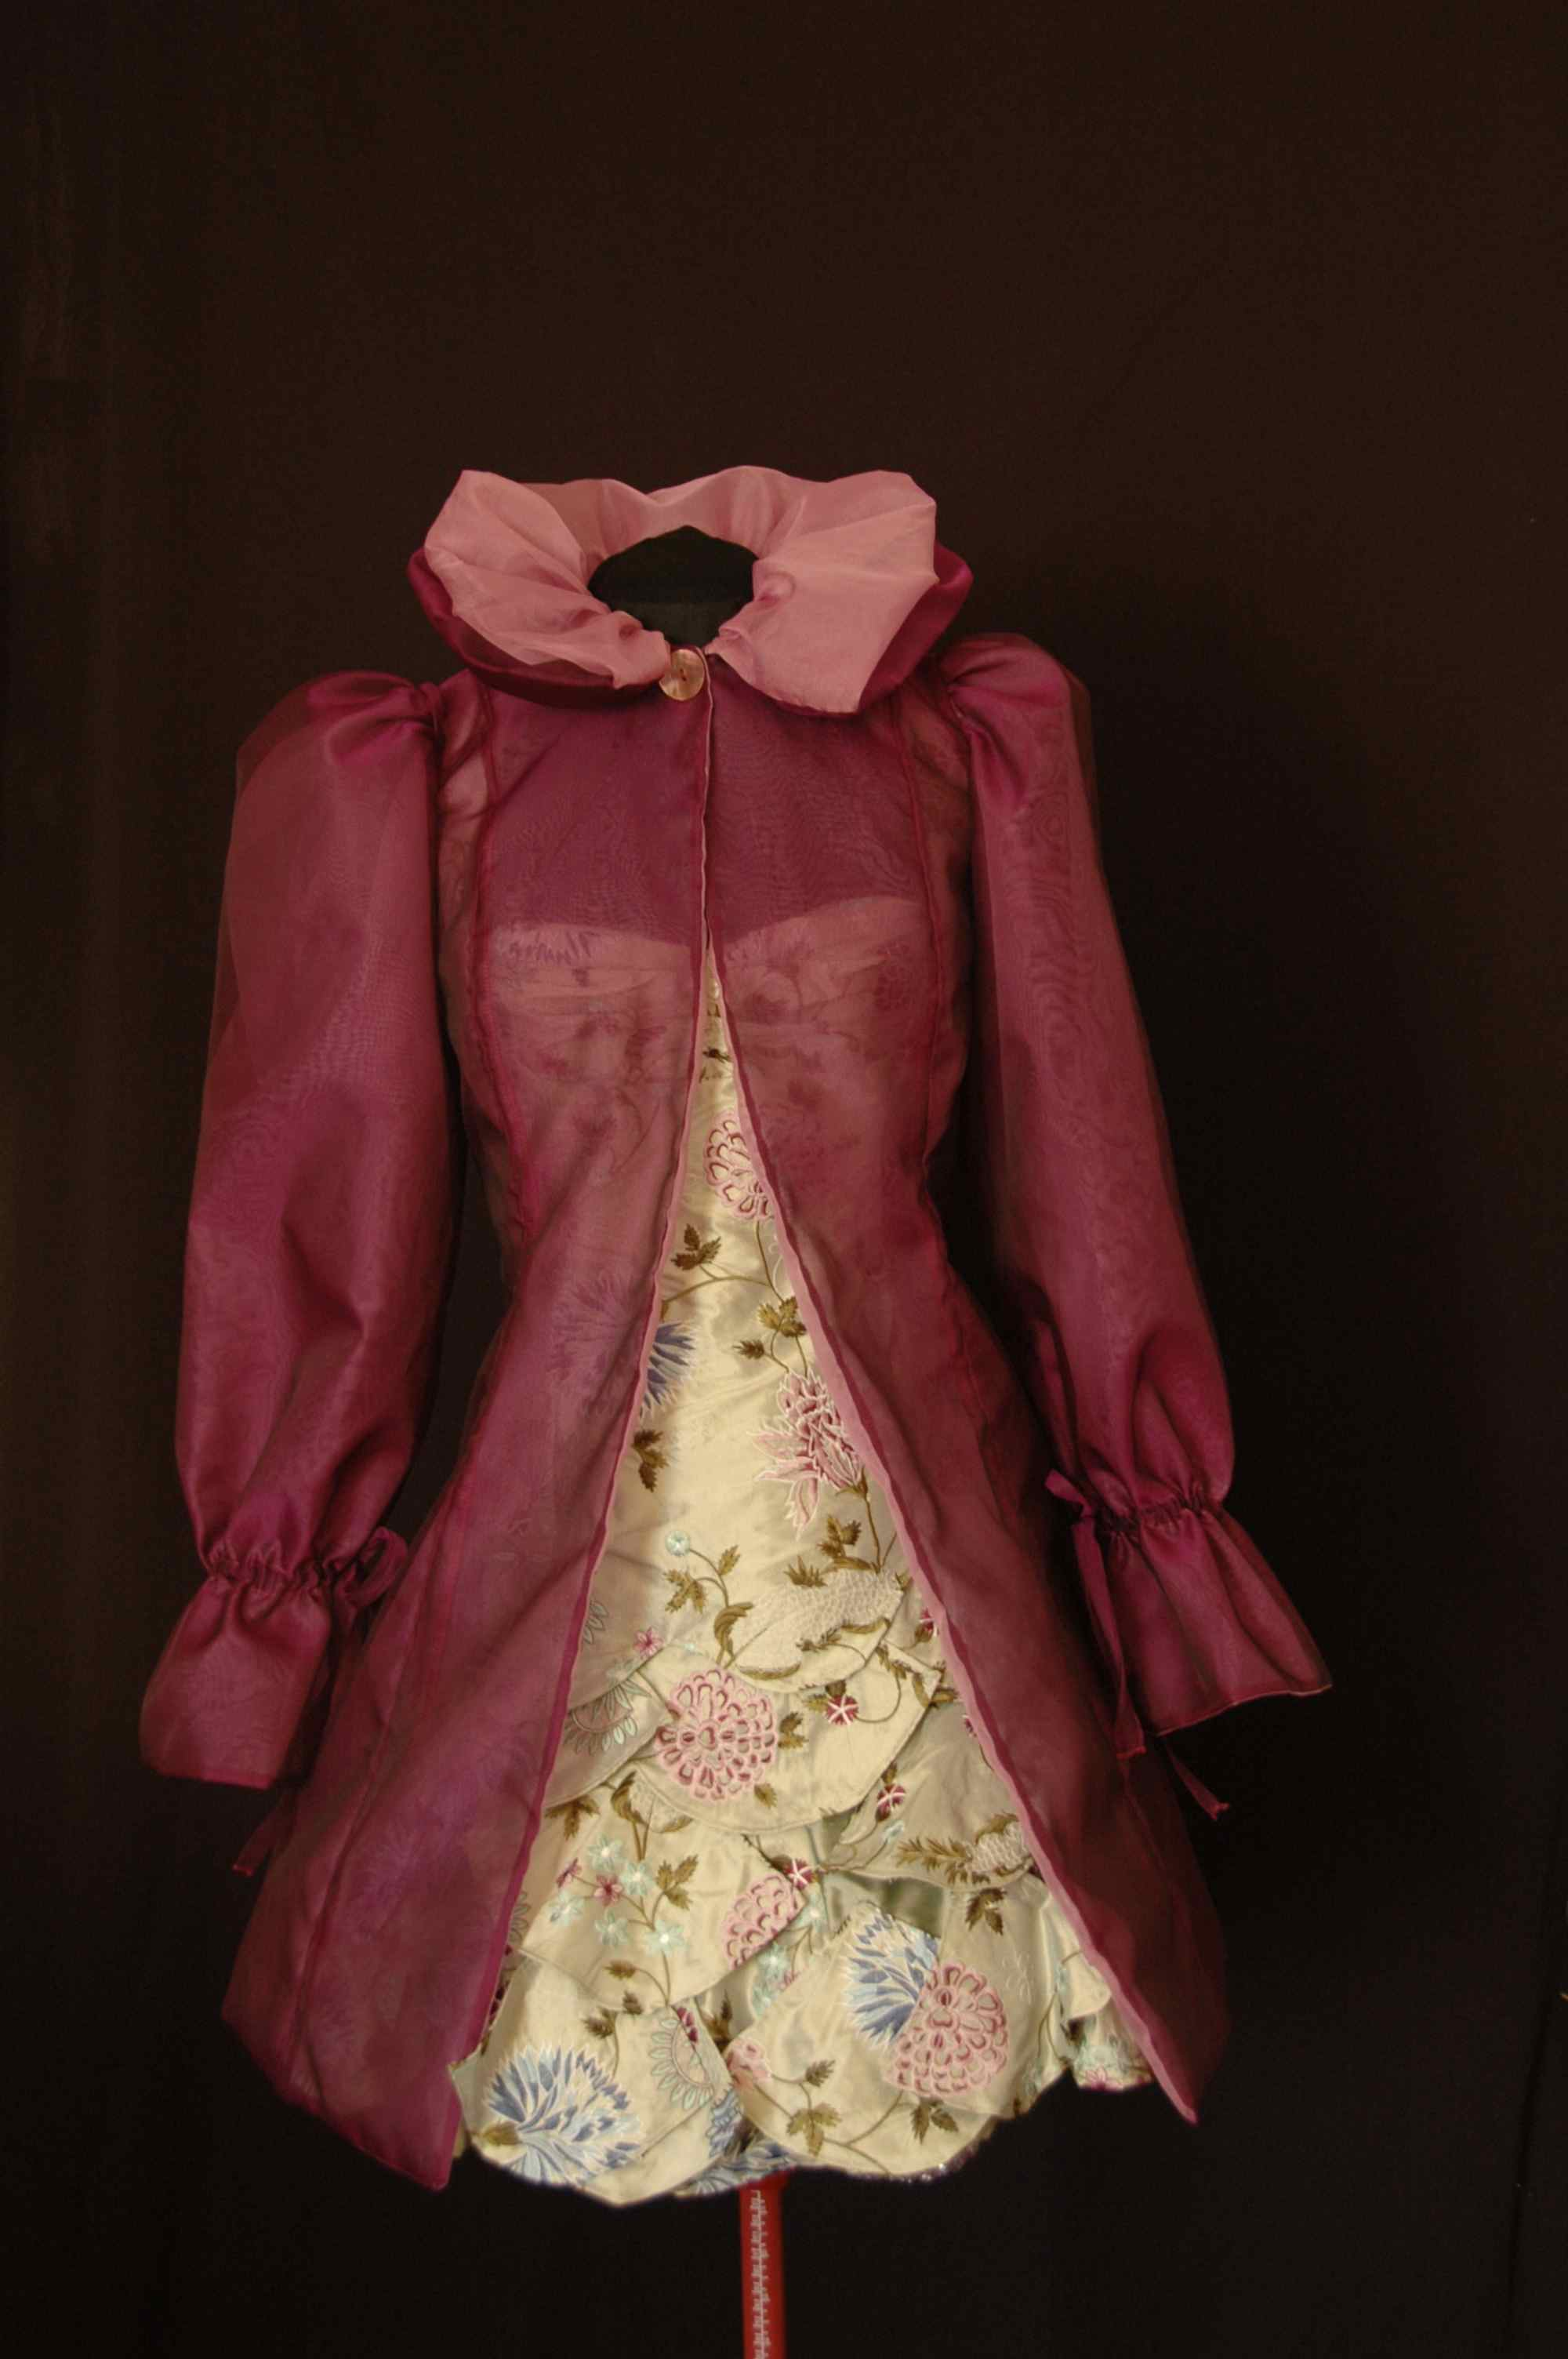 Manteau de cocktail en organza de soie réversible rose-prune